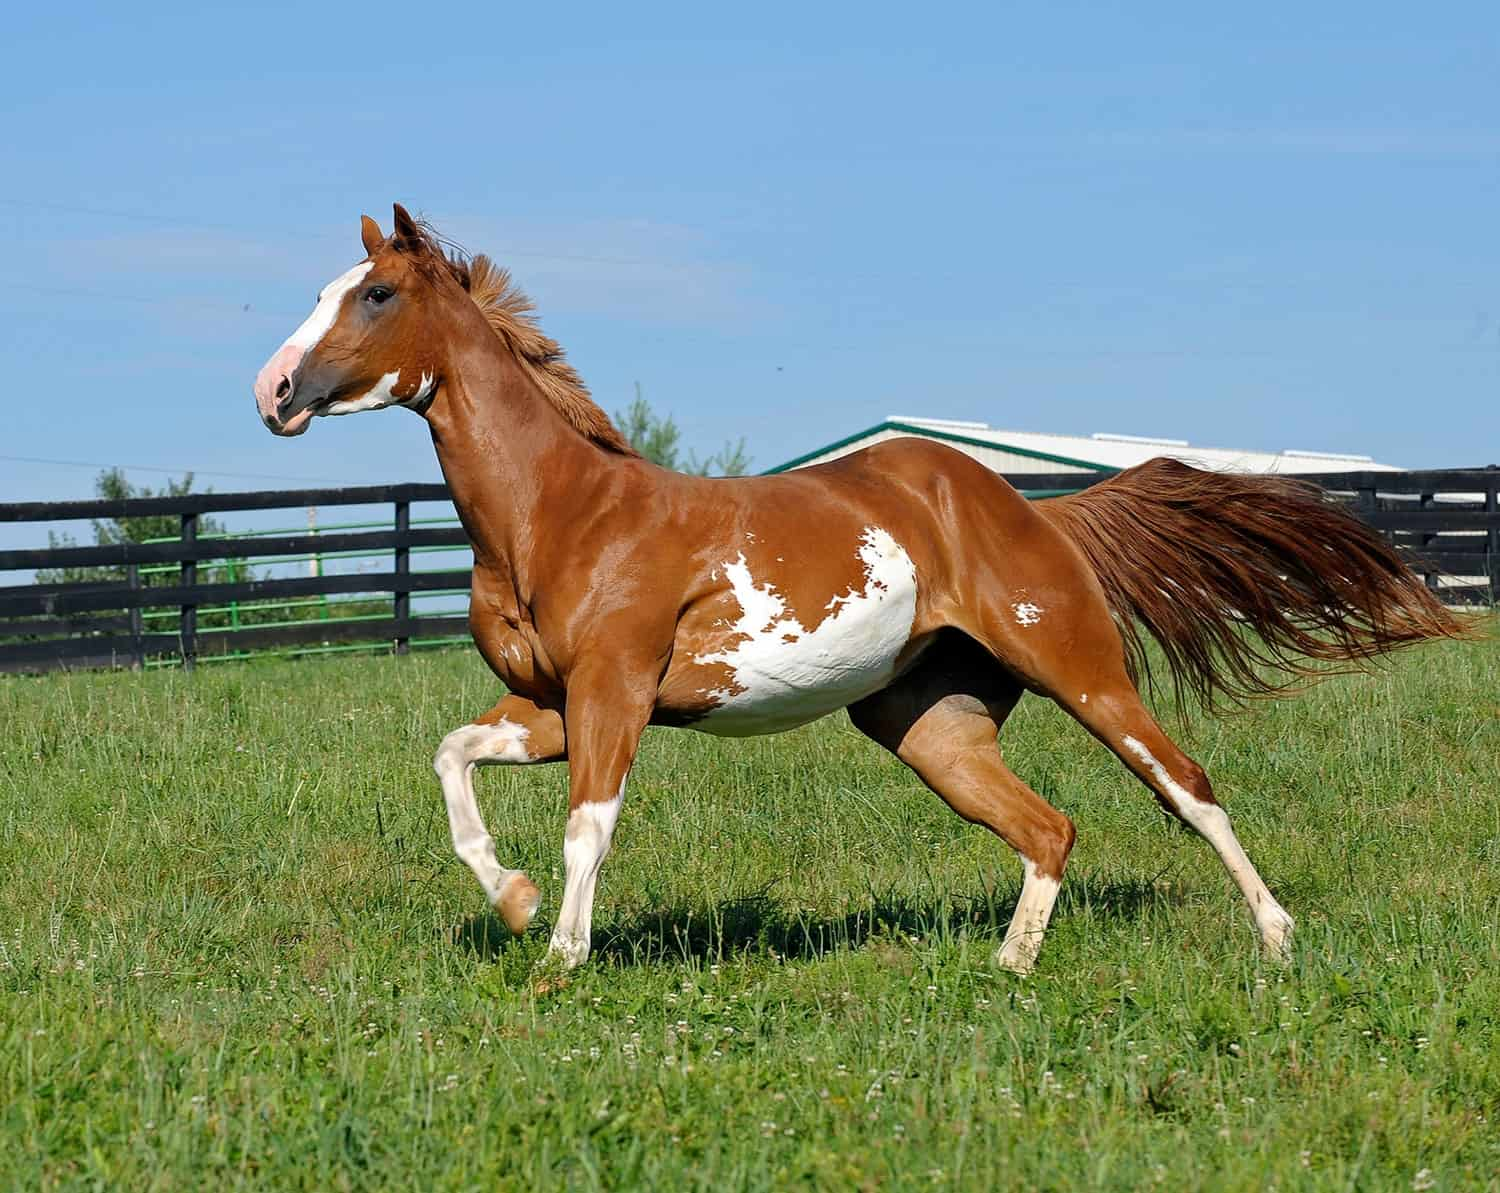 How To Make Horse Paint